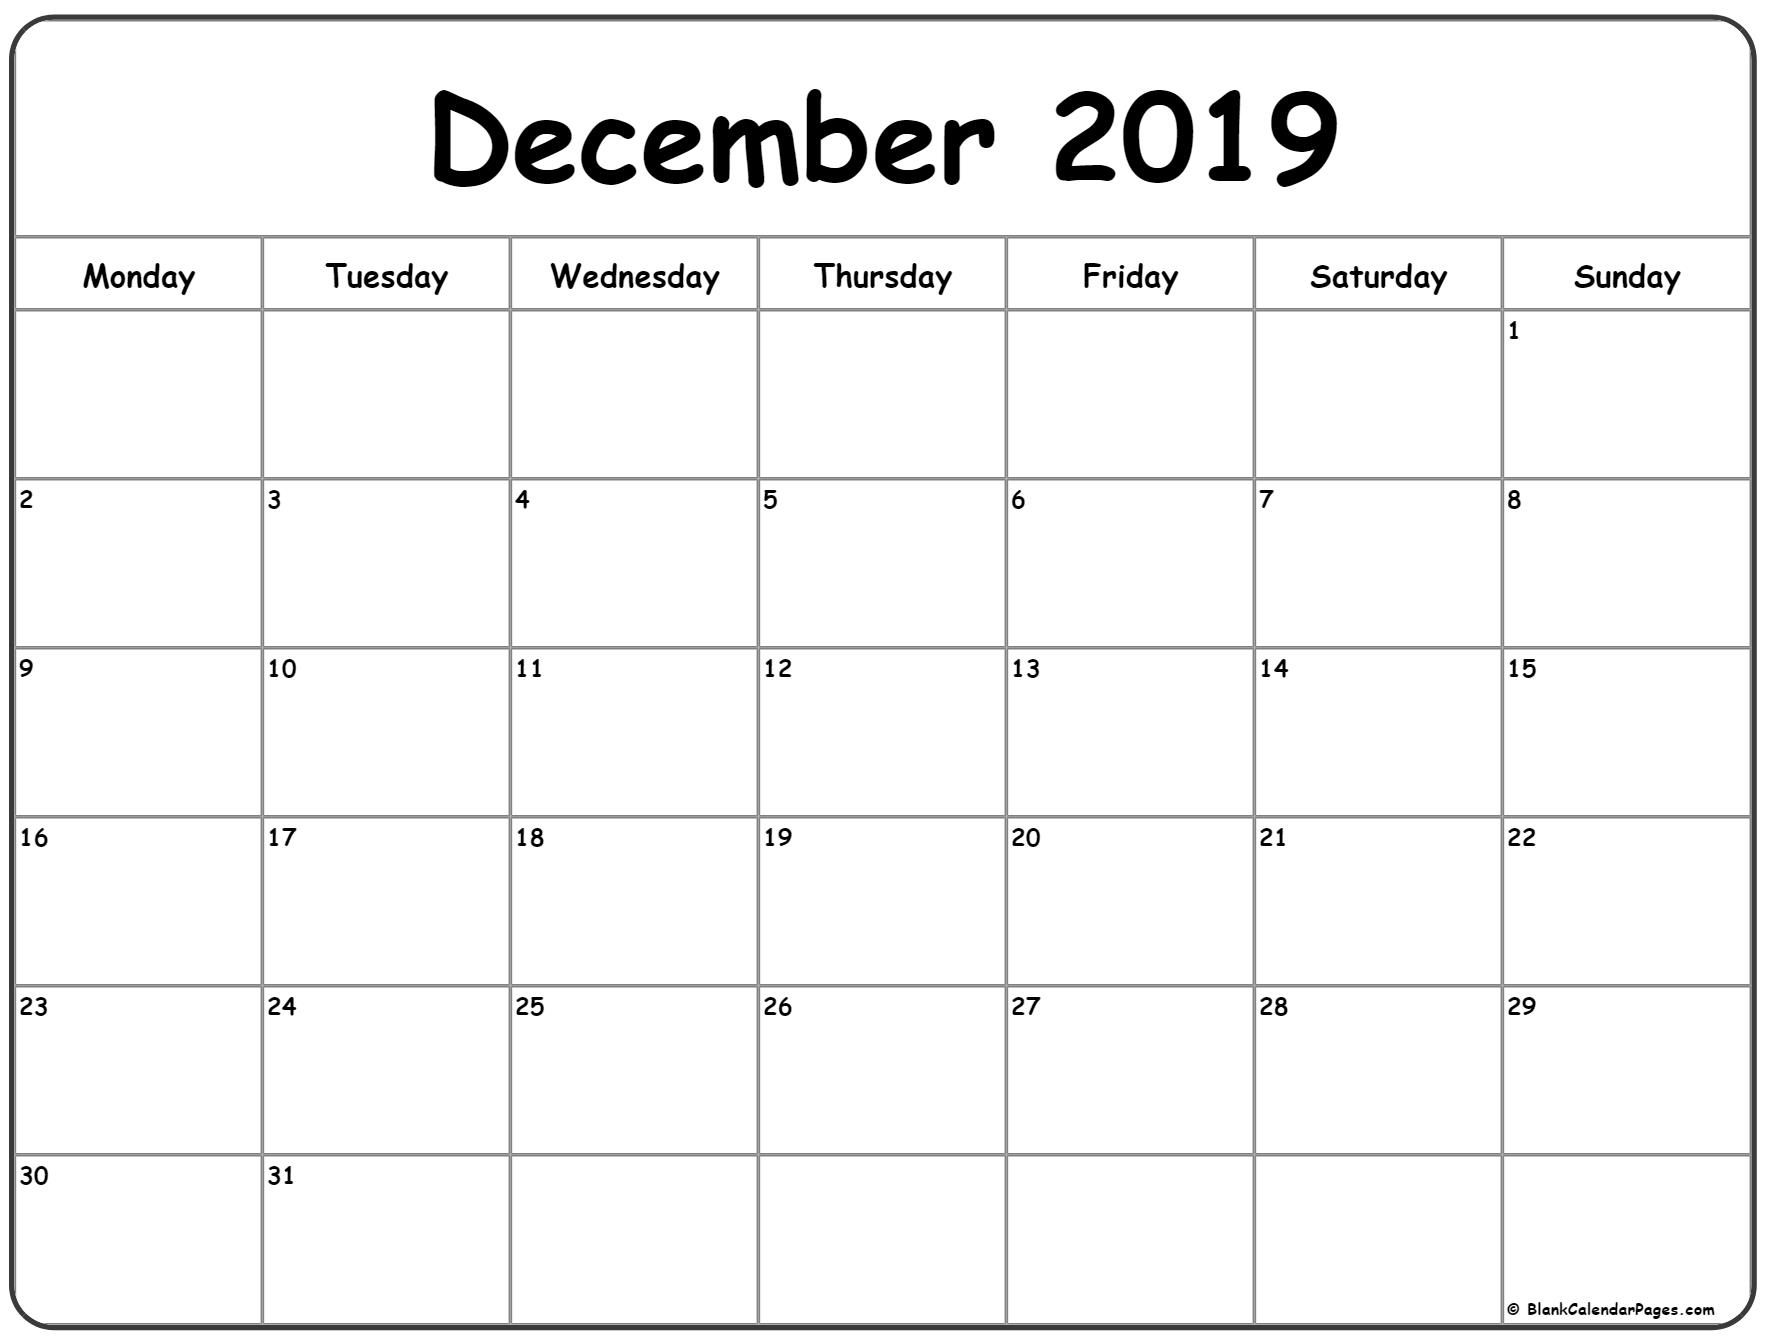 December 2019 Monday Calendar | Monday To Sunday in Calendar 2019 Monday To Sunday